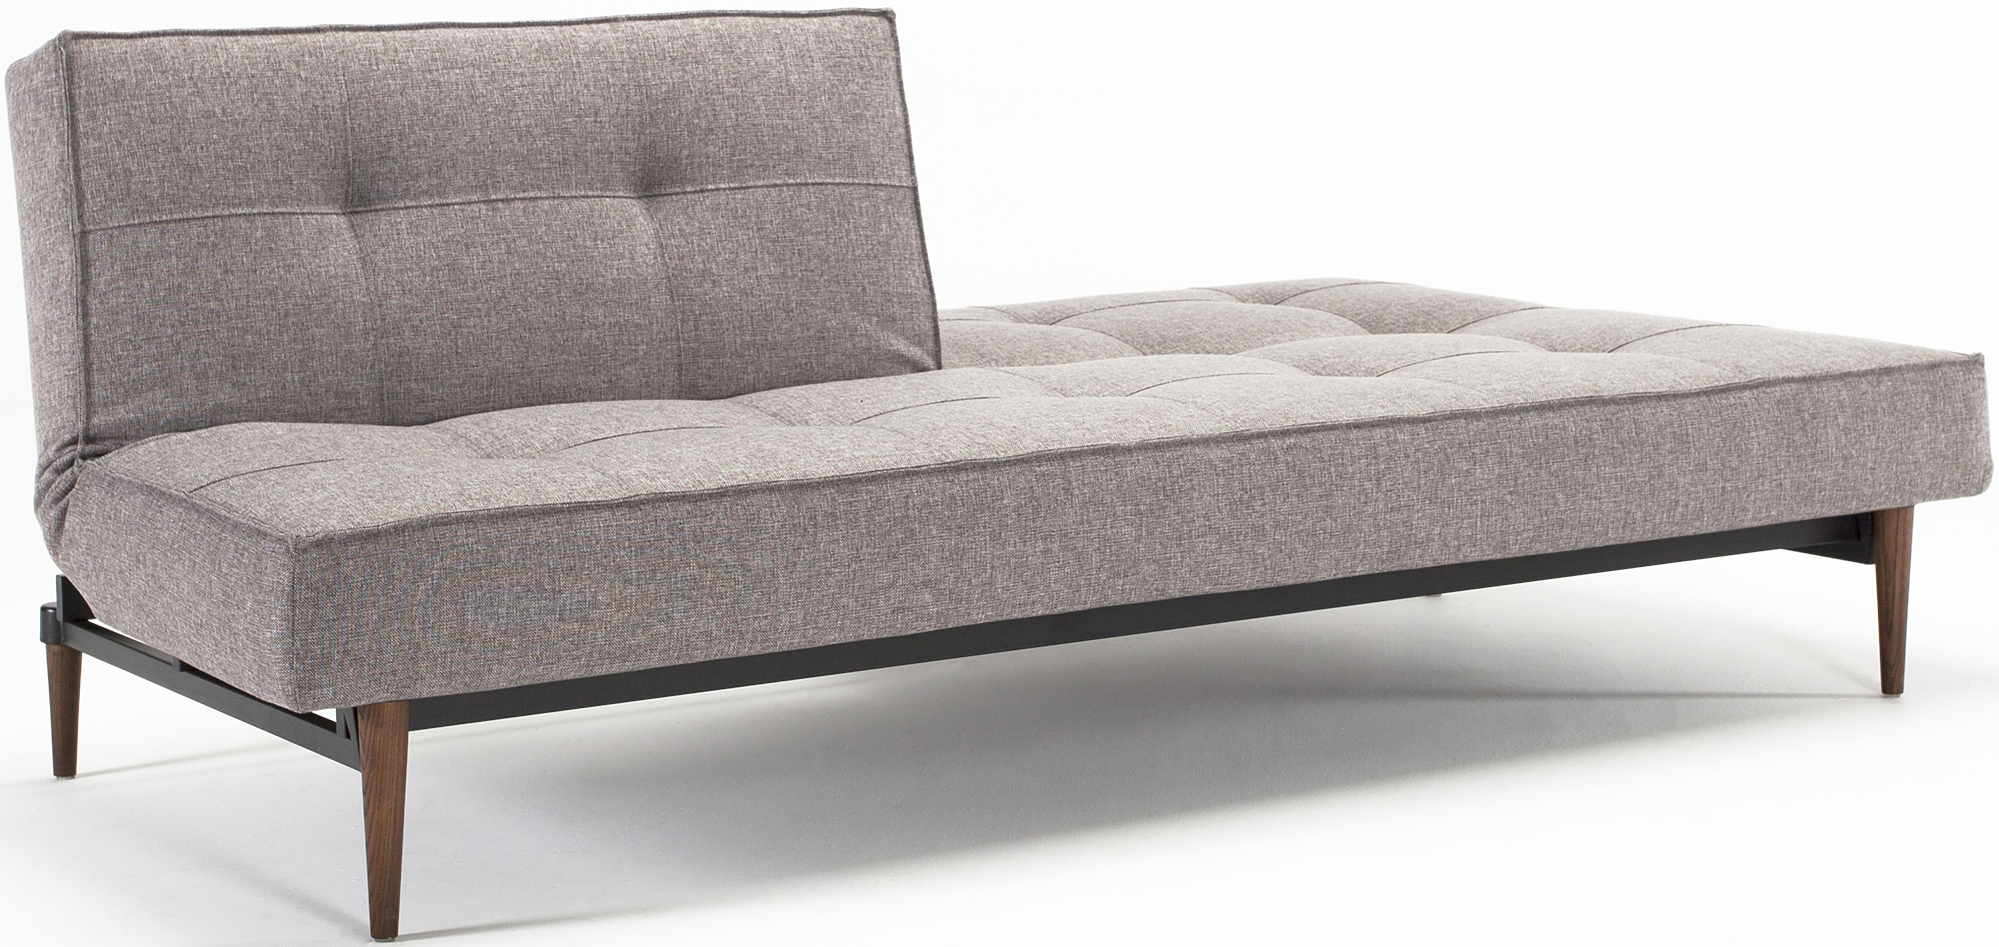 innovation splitback sofa dark styletto